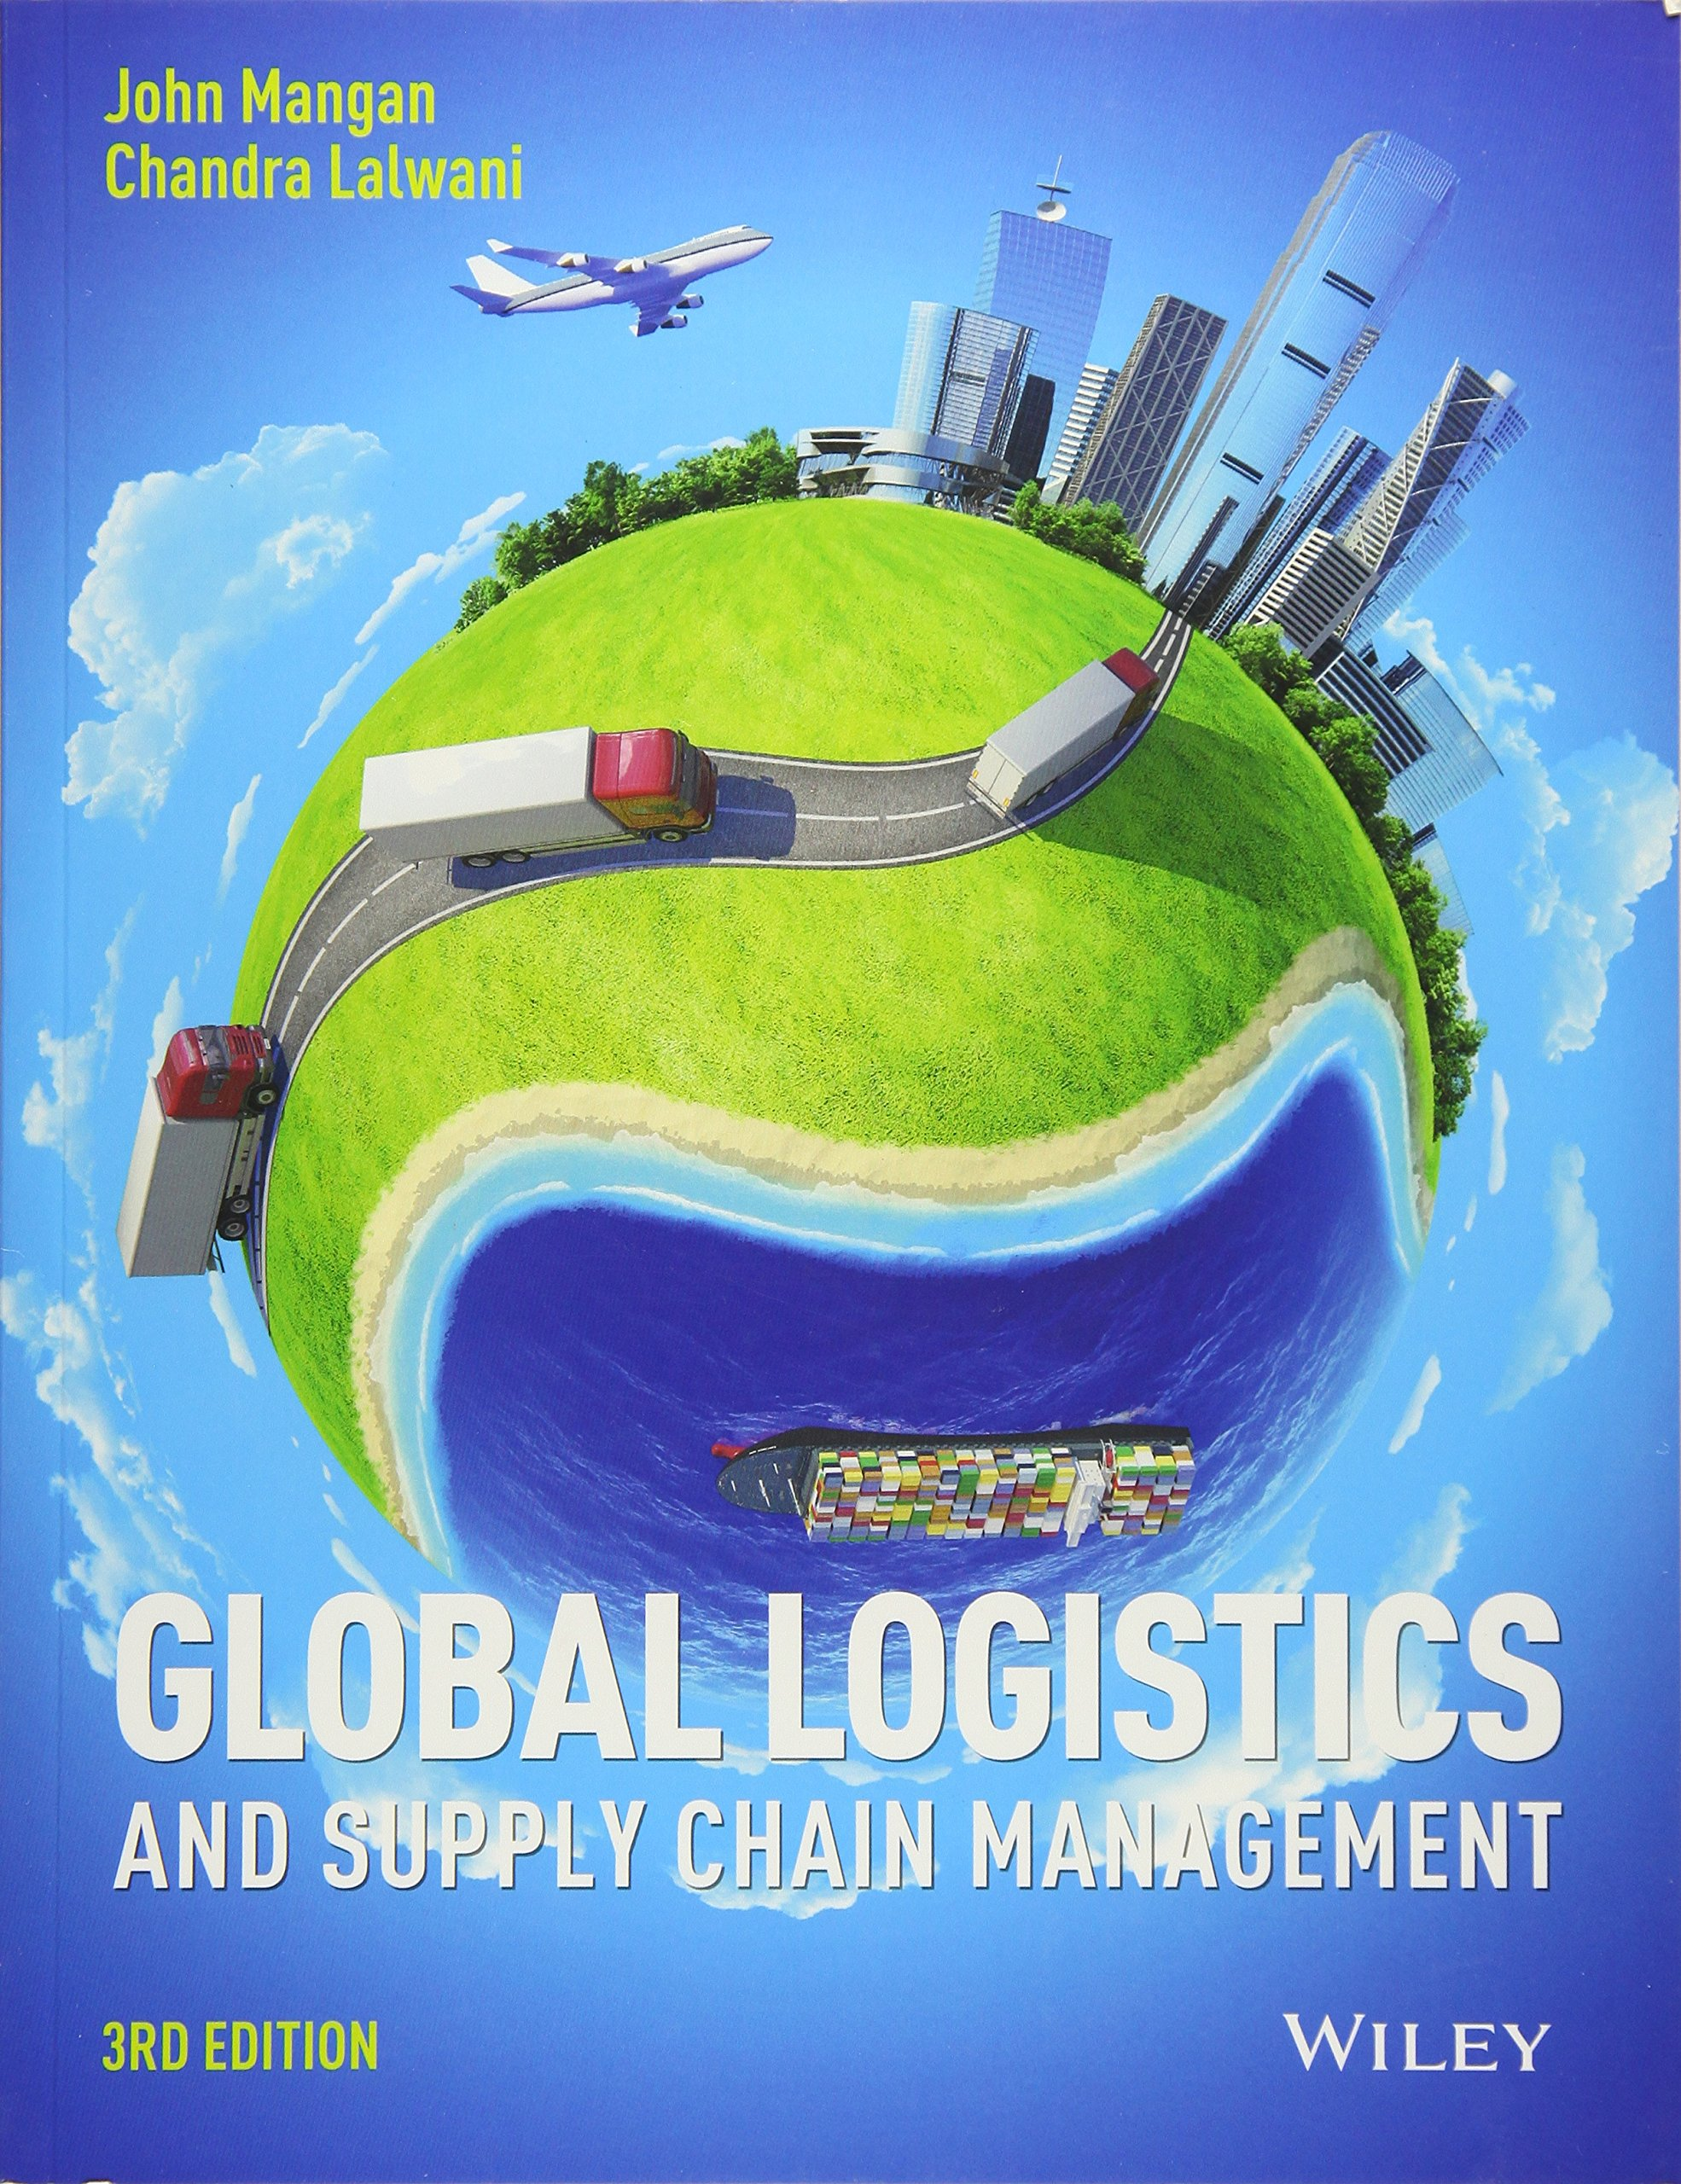 Global Logistics and Supply Chain Management by Wiley